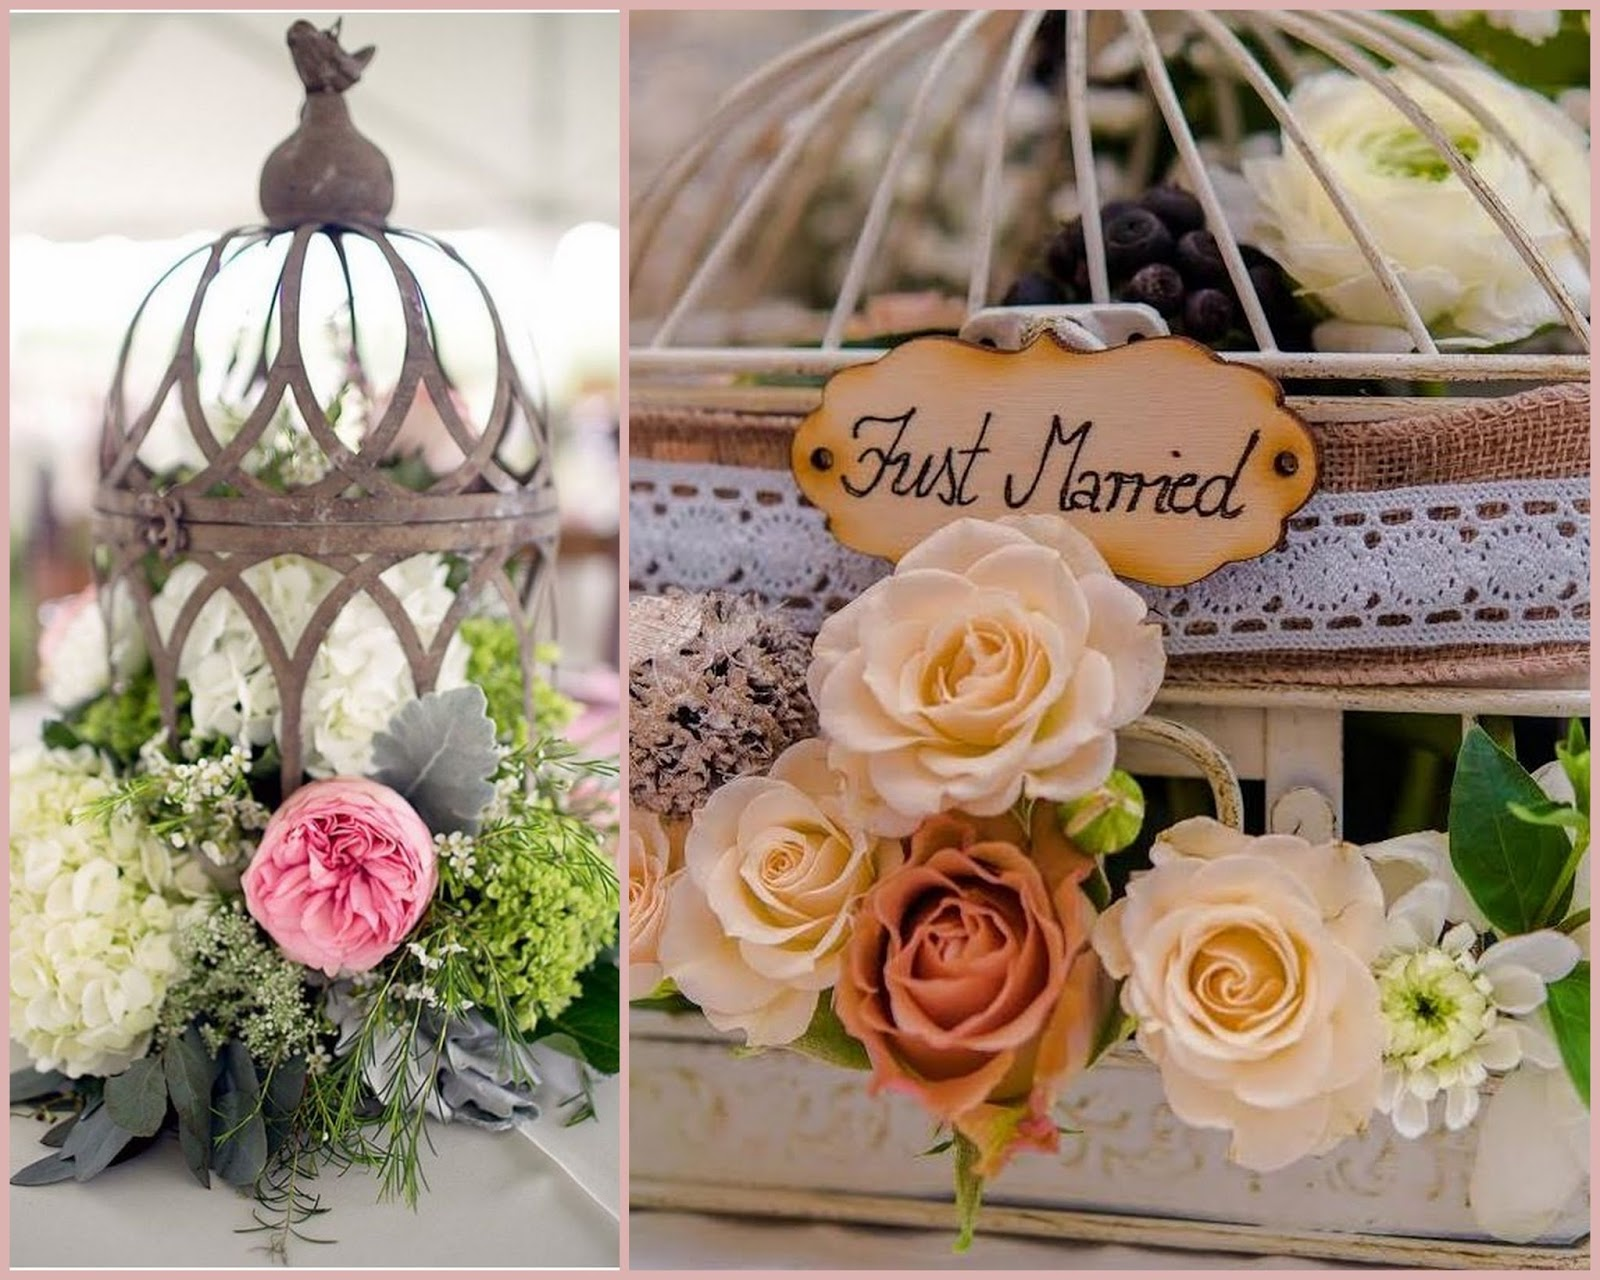 lovely wedding: Decorazioni per la Chiesa